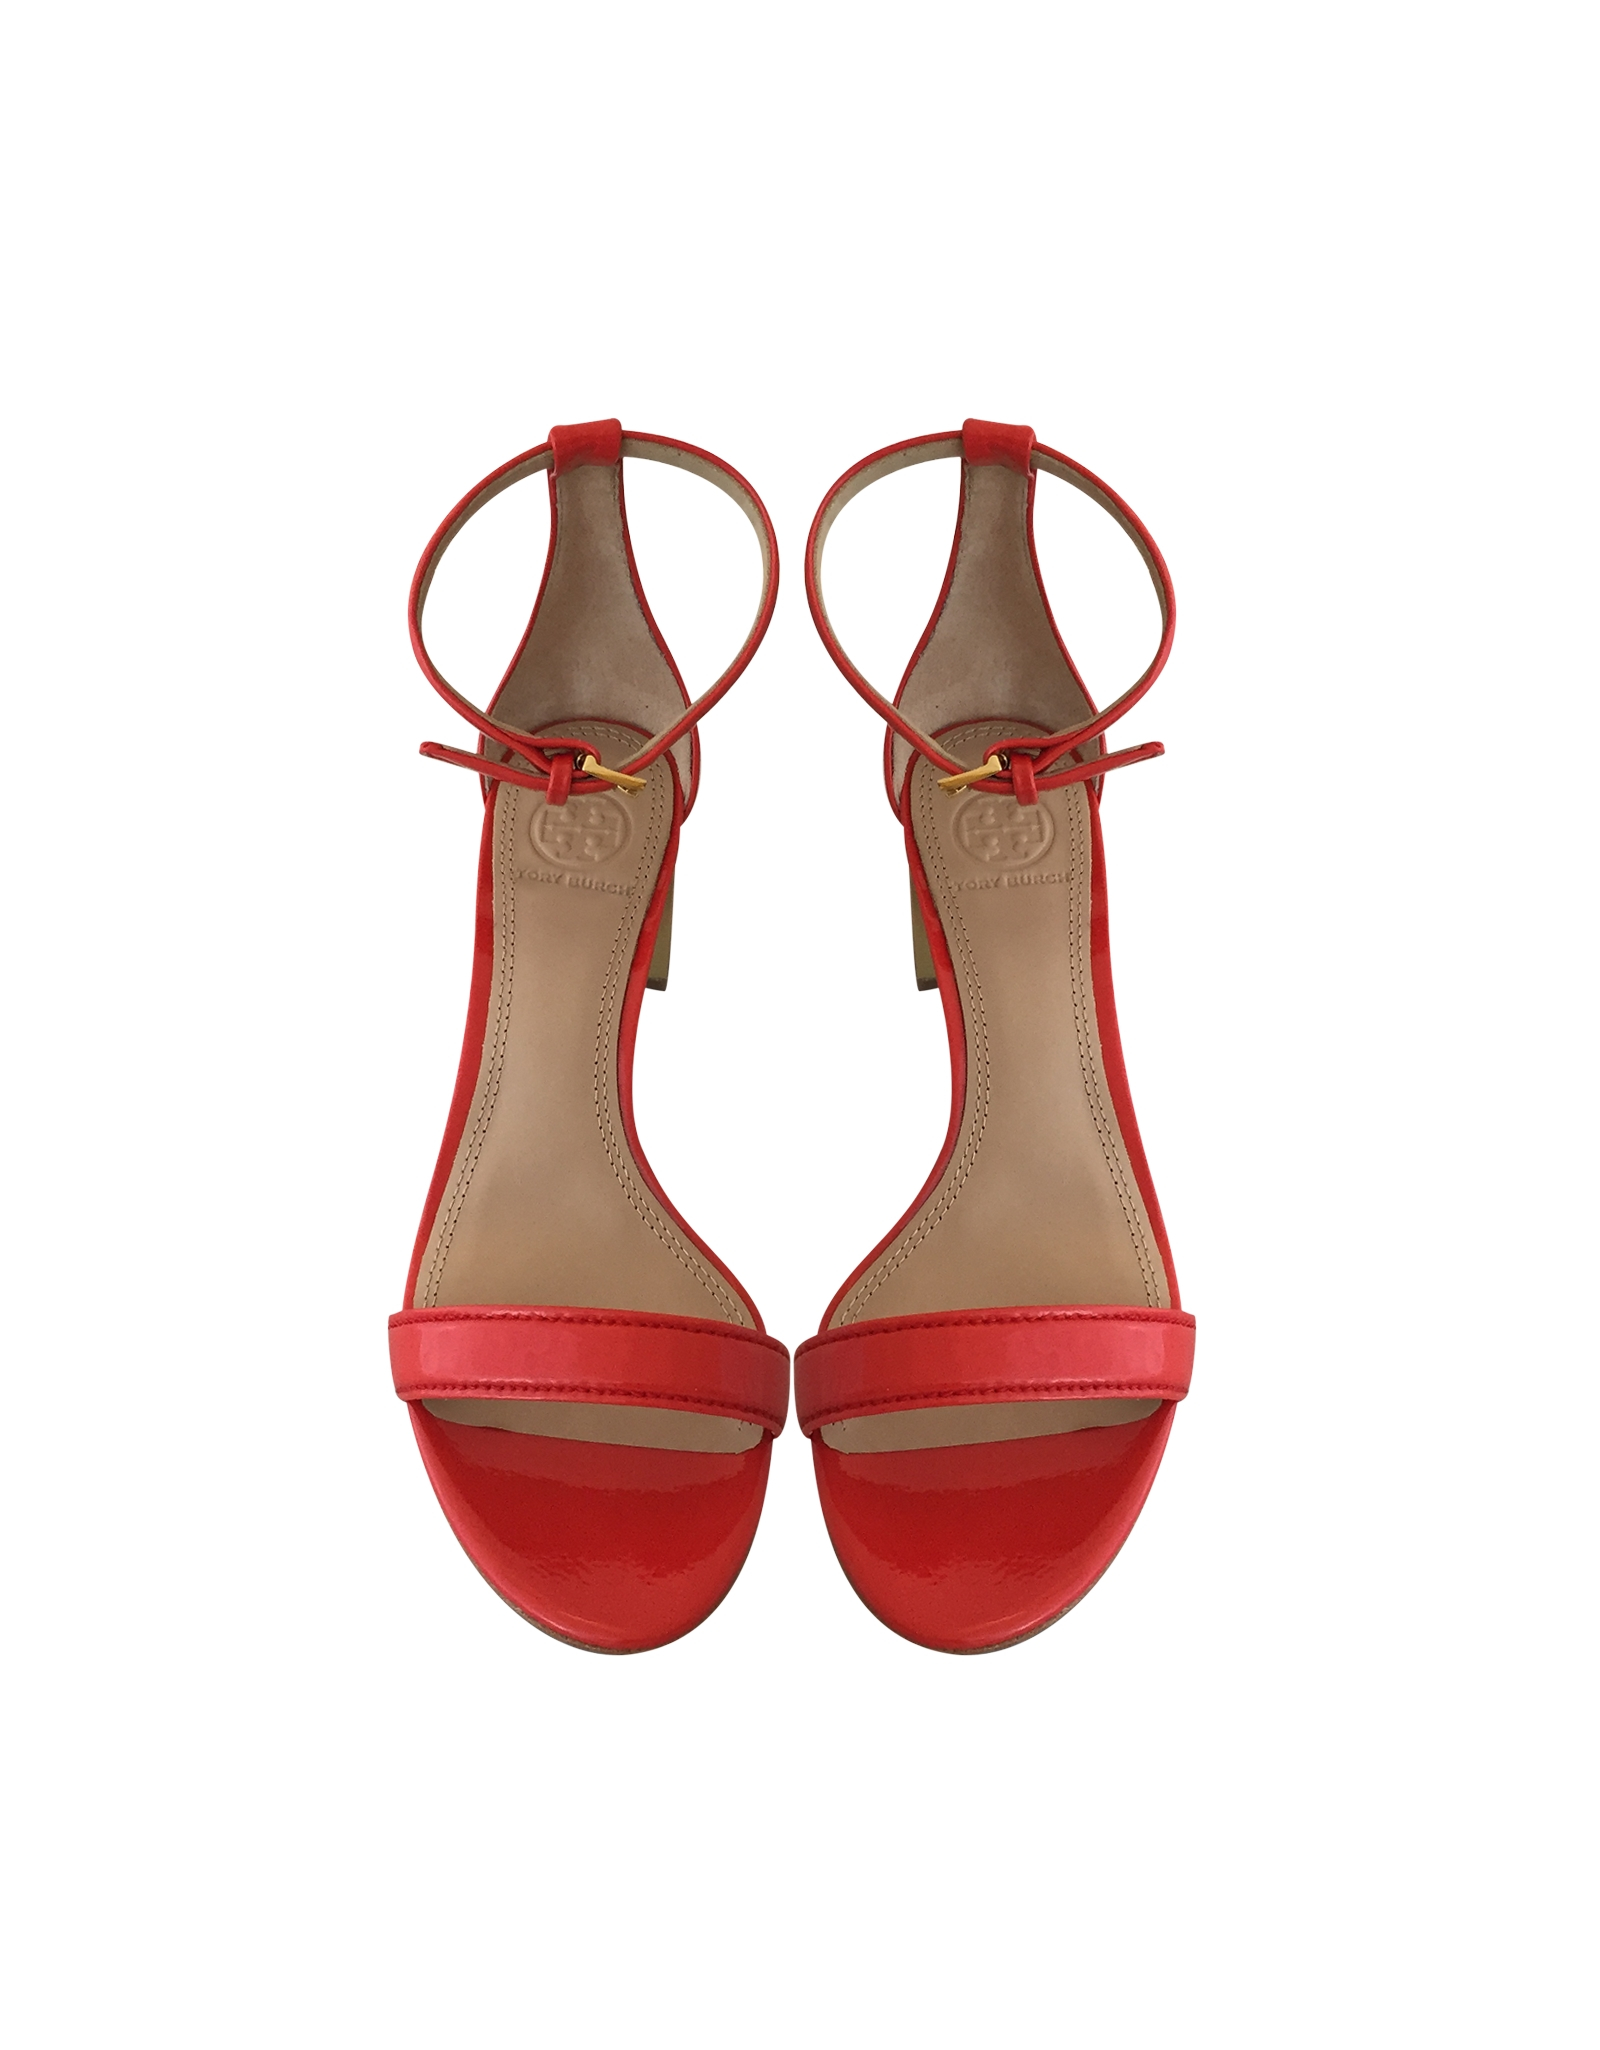 5b4d1fccbc17 Tory Burch Cecile Pepper Red Leather Mid Heel Sandal in Red - Lyst